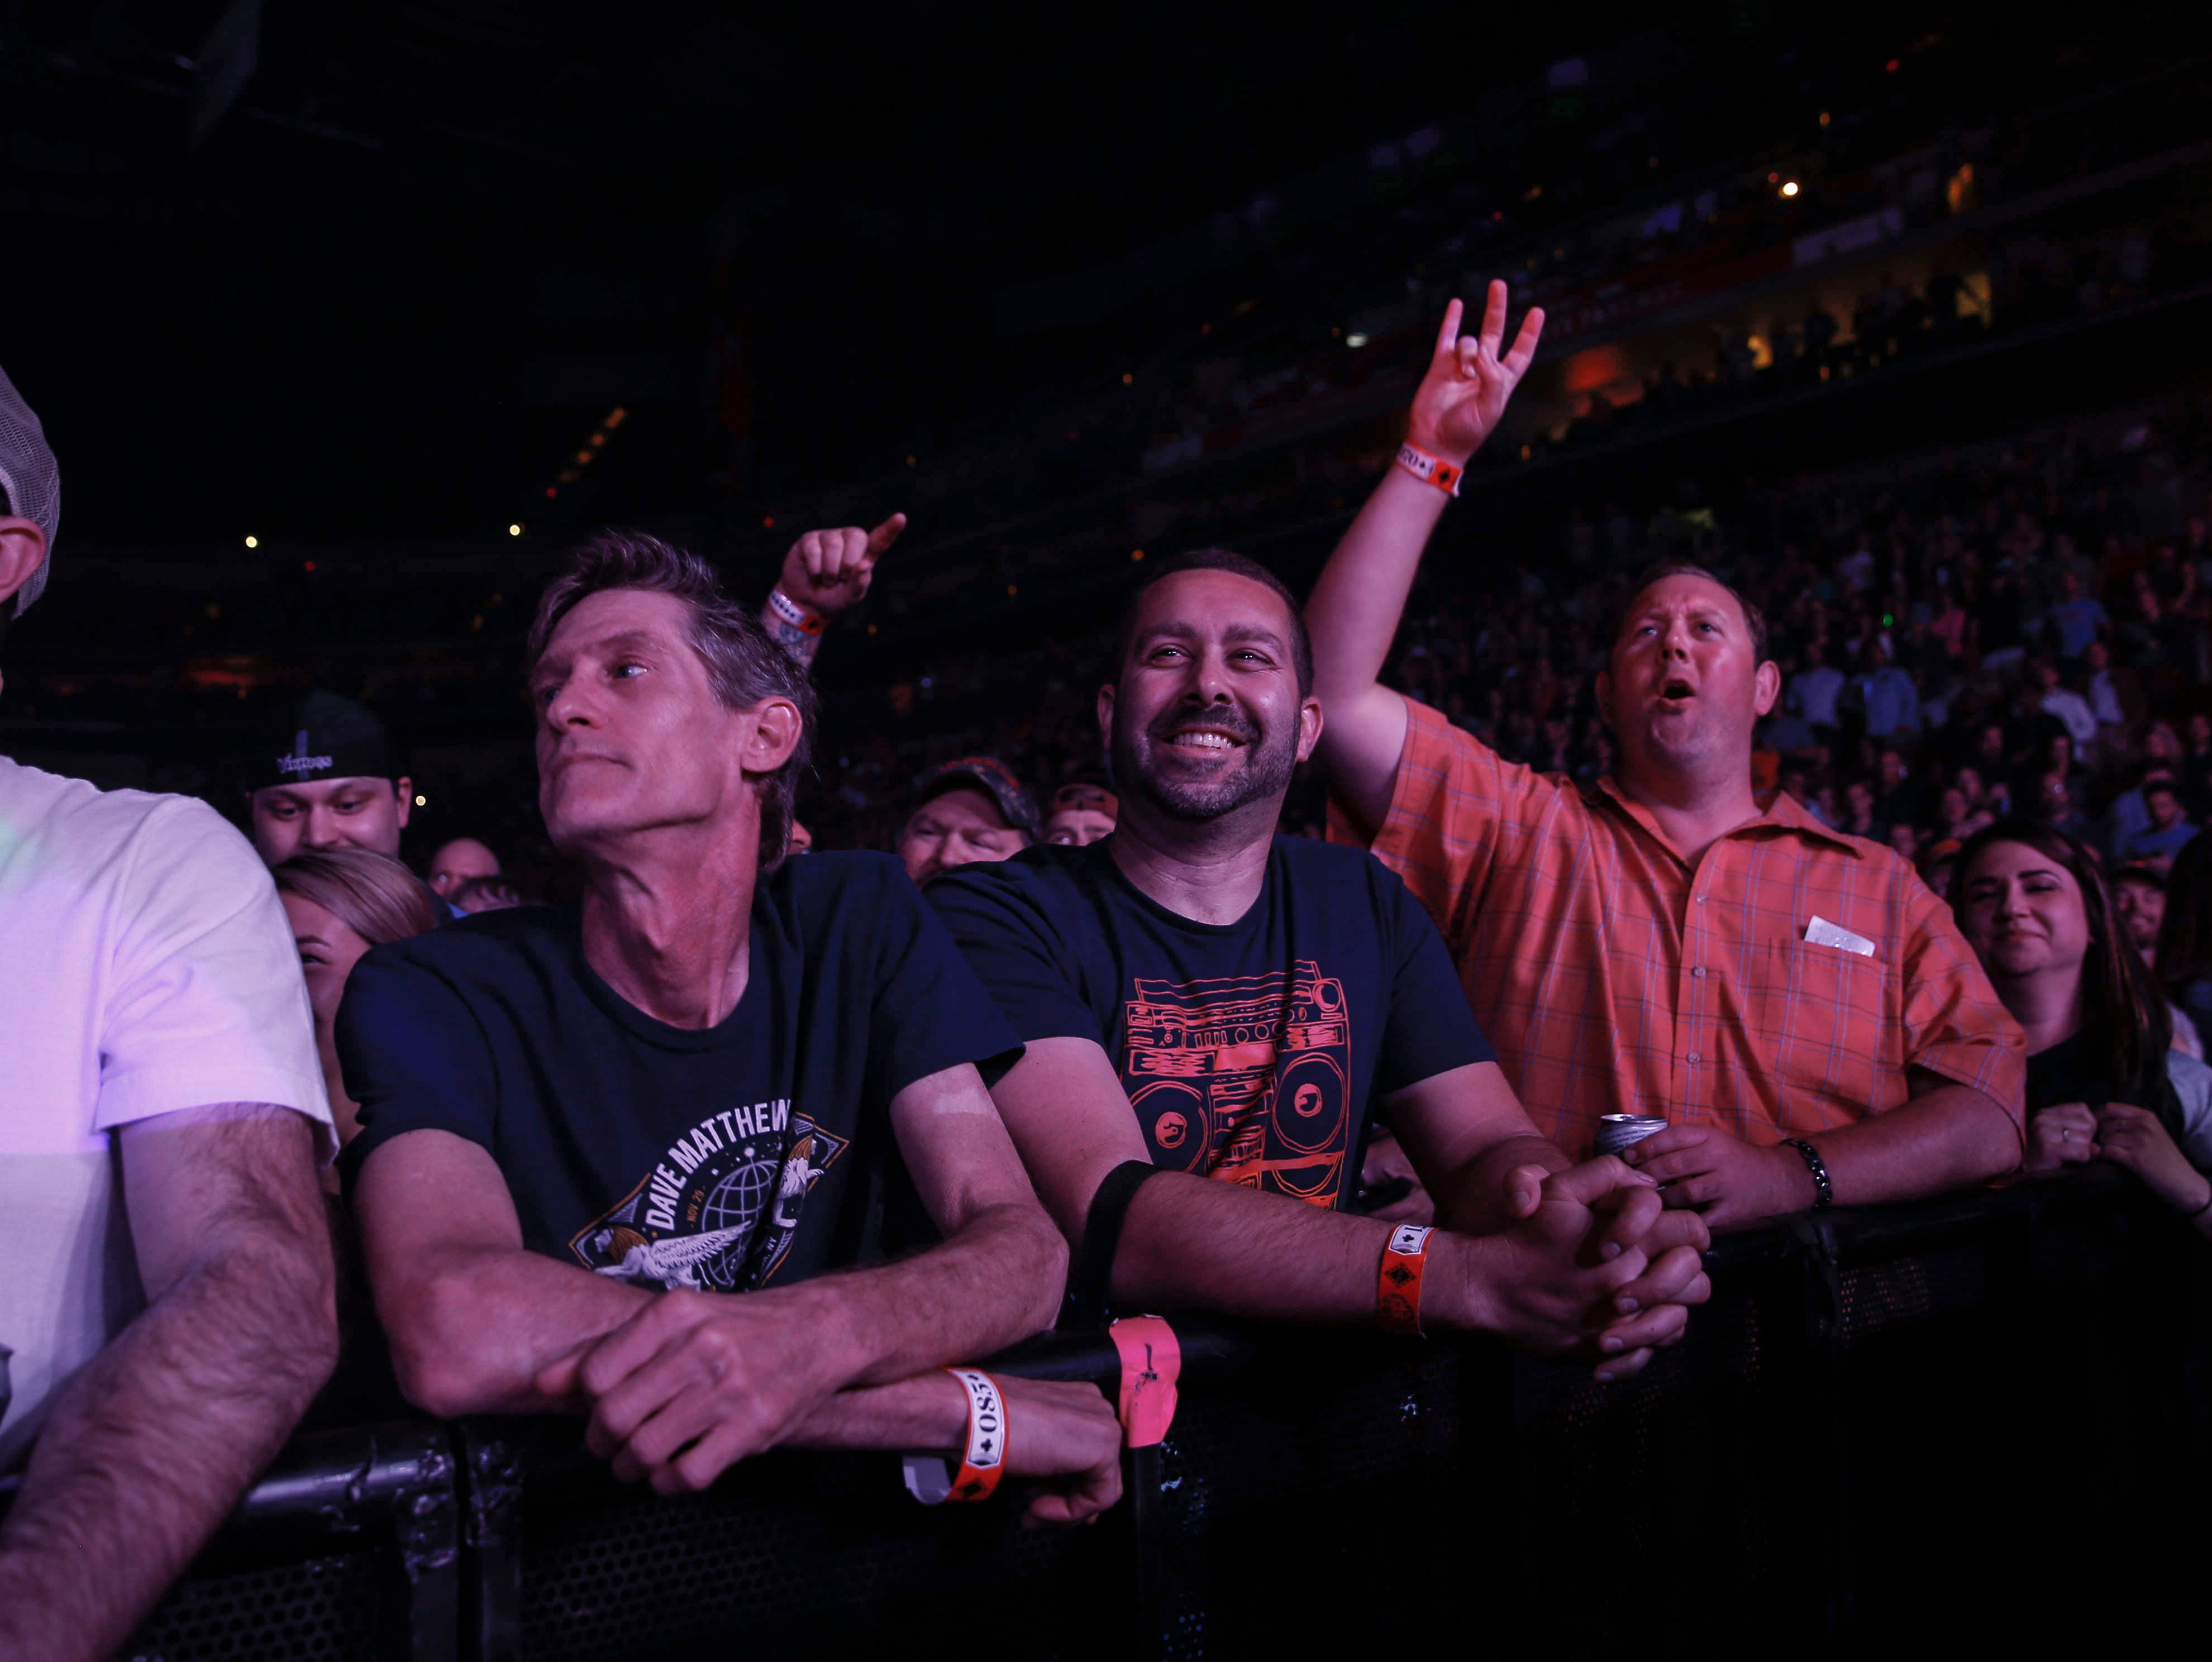 Fans of the Dave Matthews Band cheer during Tuesday's performance in front of a packed Wells Fargo Arena in Des Moines.